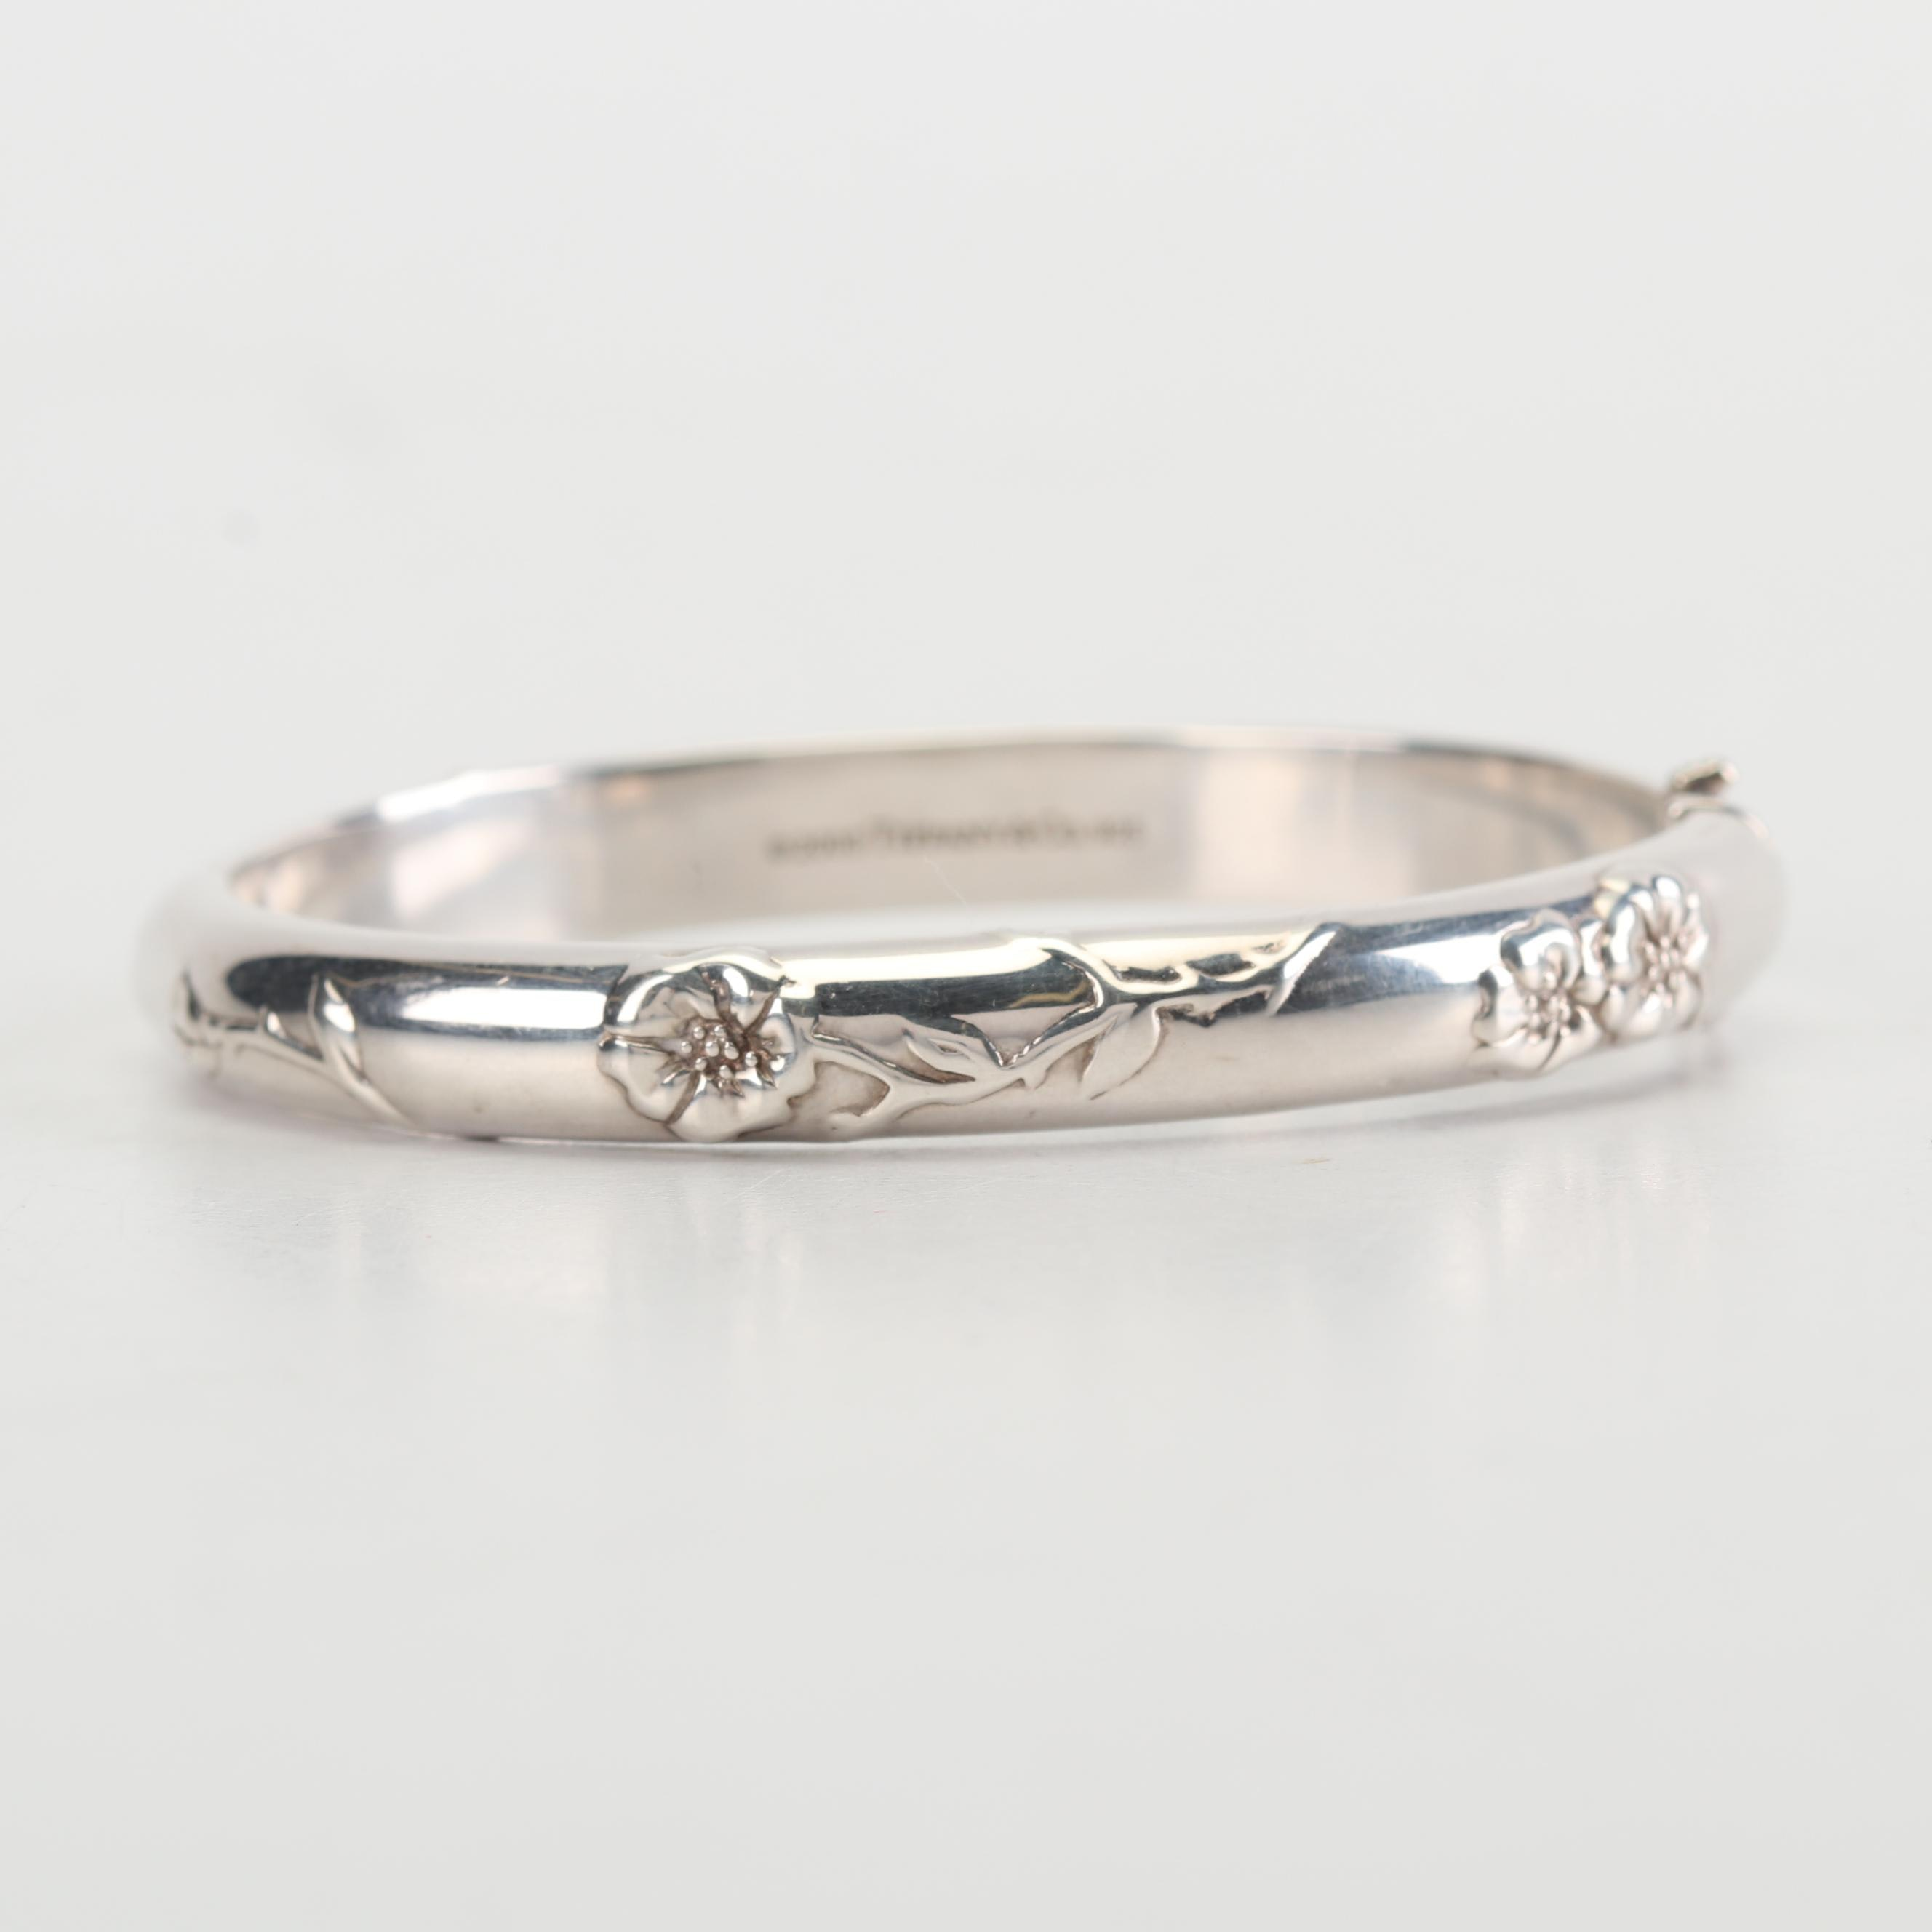 Tiffany & Co. Sterling Silver Floral Bangle